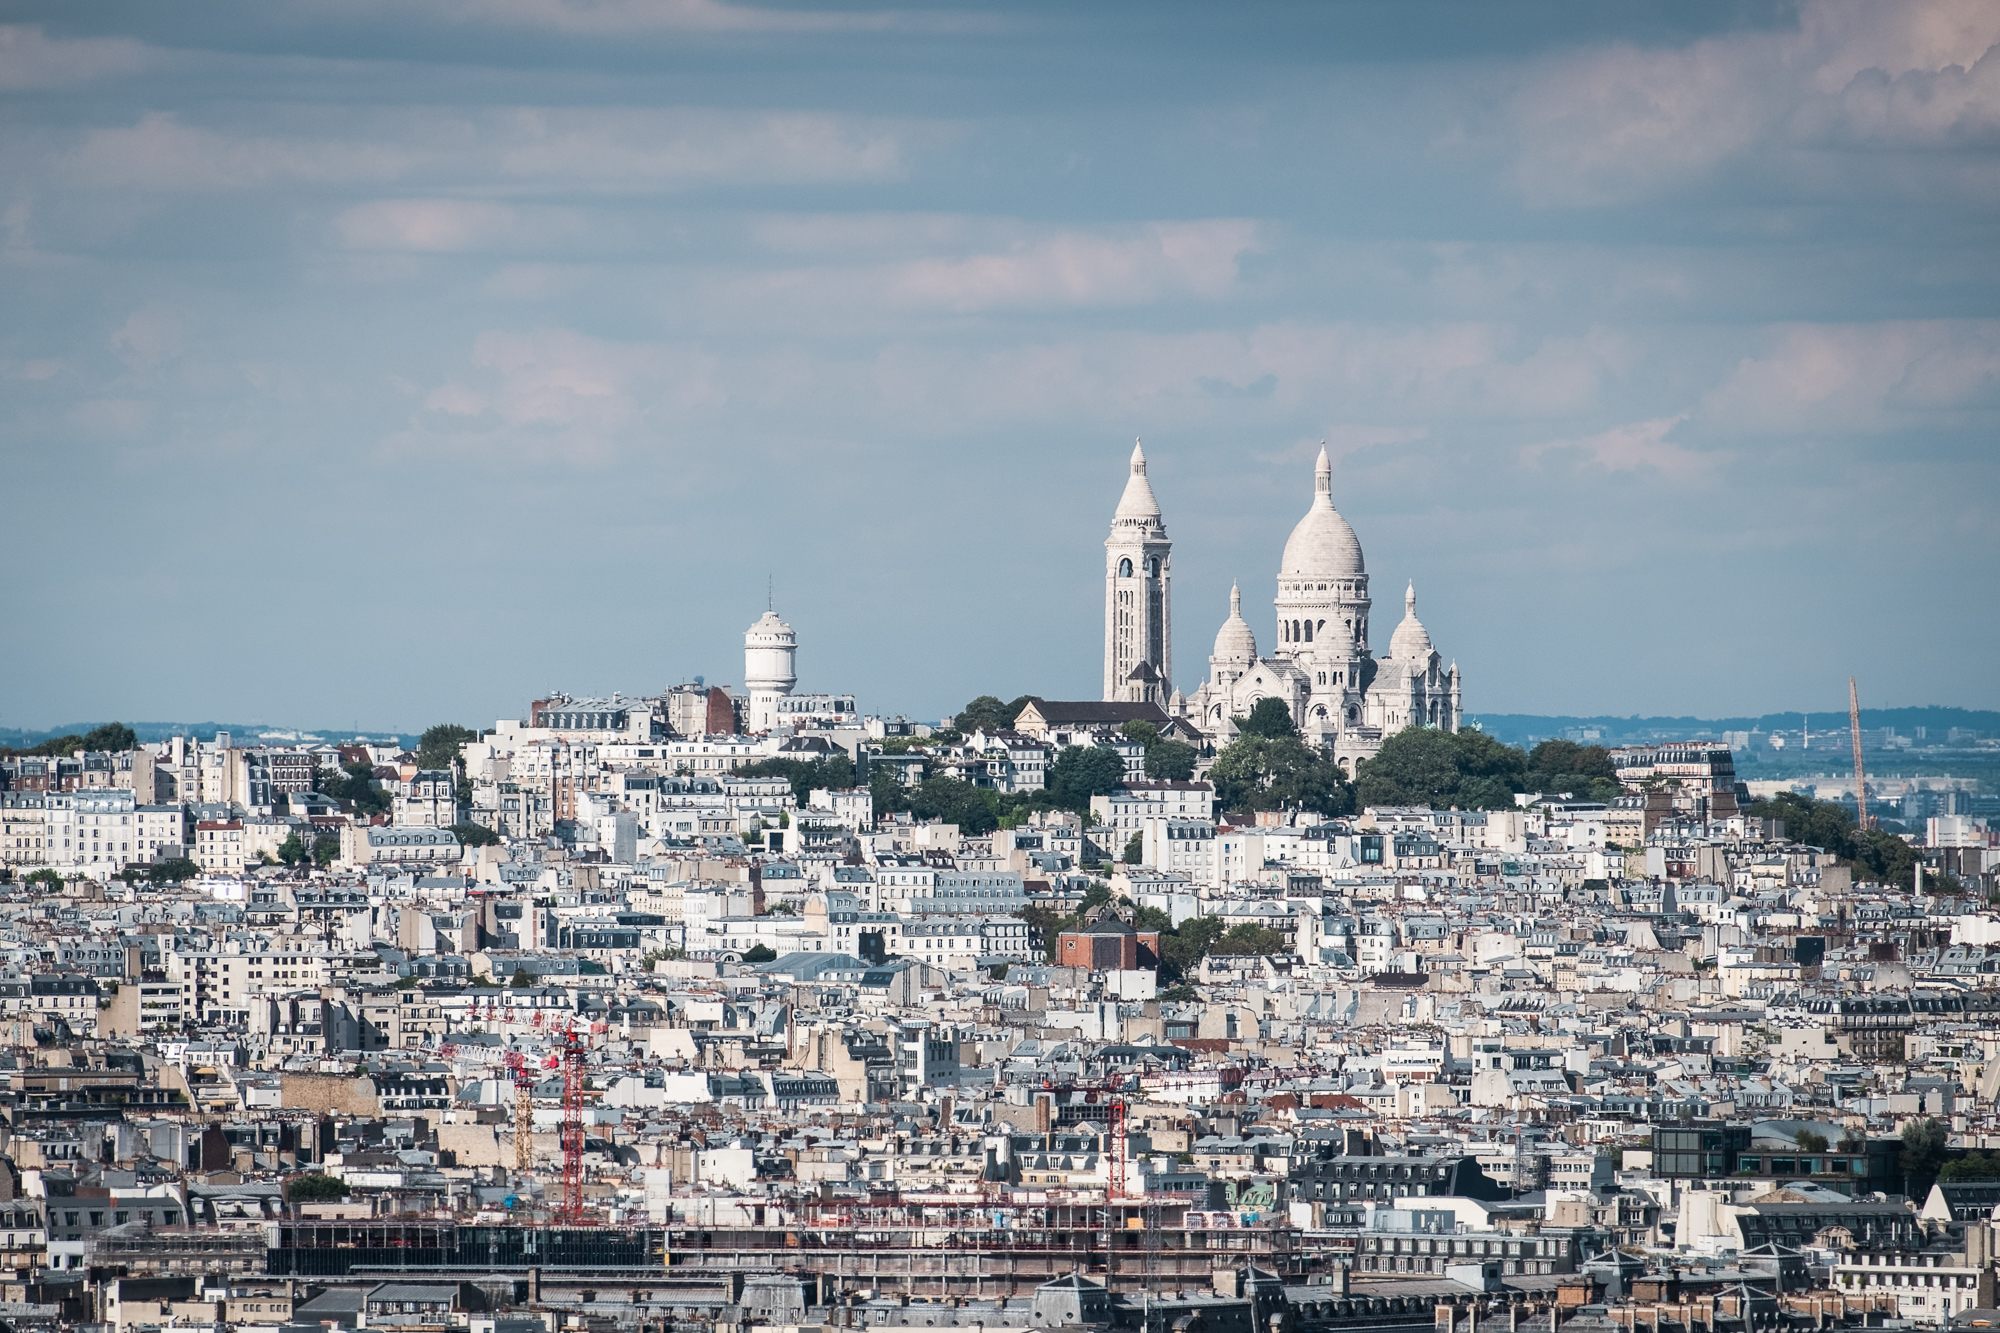 Sacré-Cœur Basilica from the Eiffel Tower | Fujifilm XT2 | XF55-200mm | 200mm | 1/1,100 second | f/7.1 | ISO200